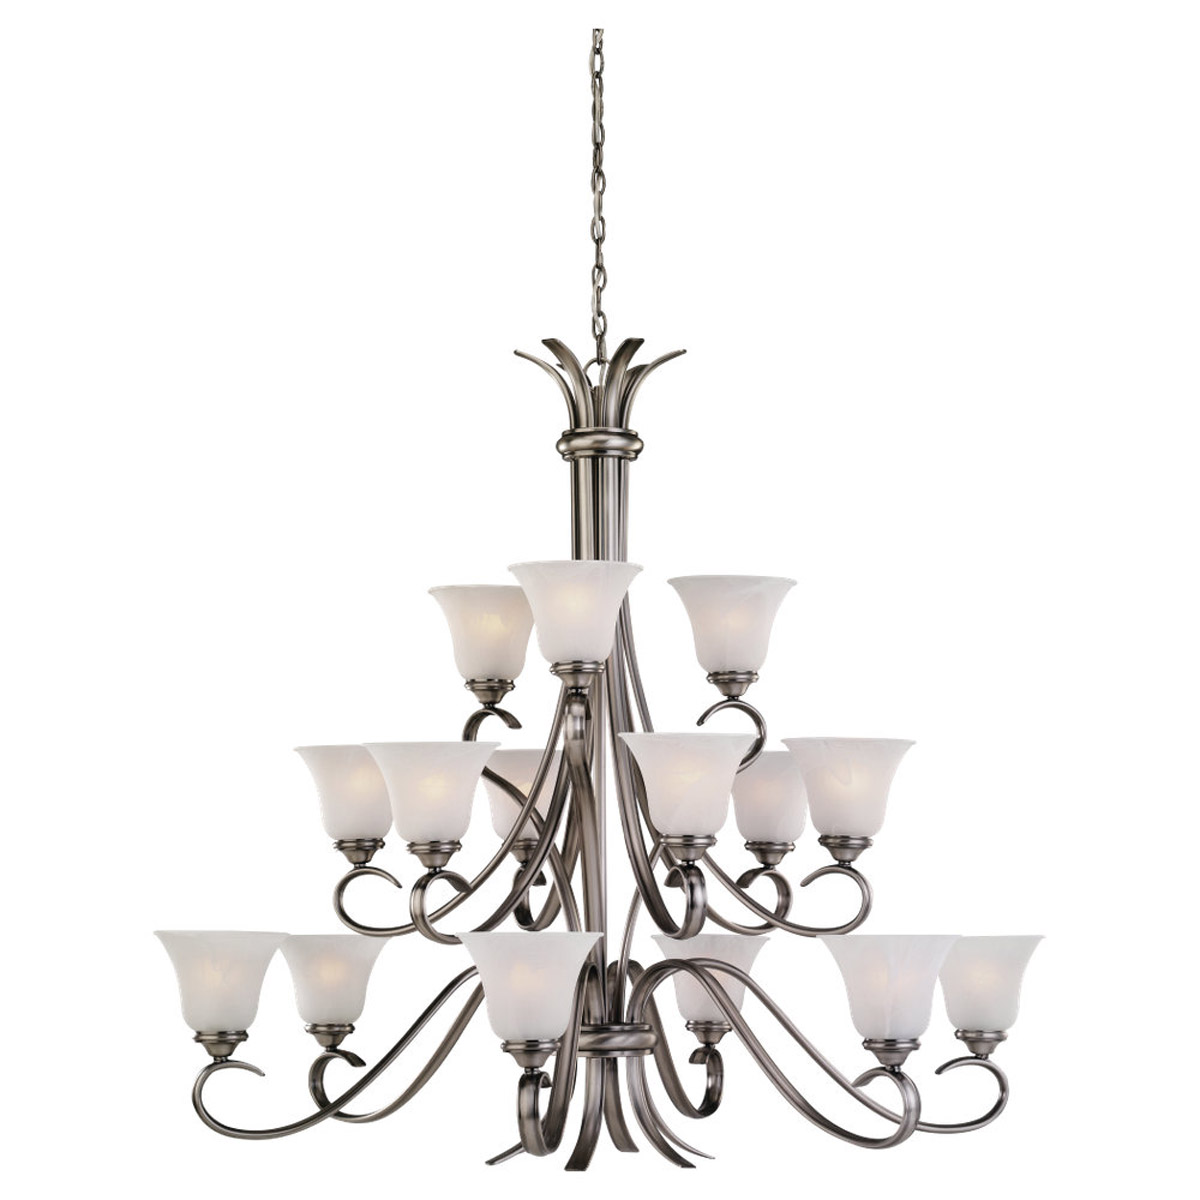 Sea Gull Lighting Rialto 15 Light Chandelier in Antique Brushed Nickel 31363-965